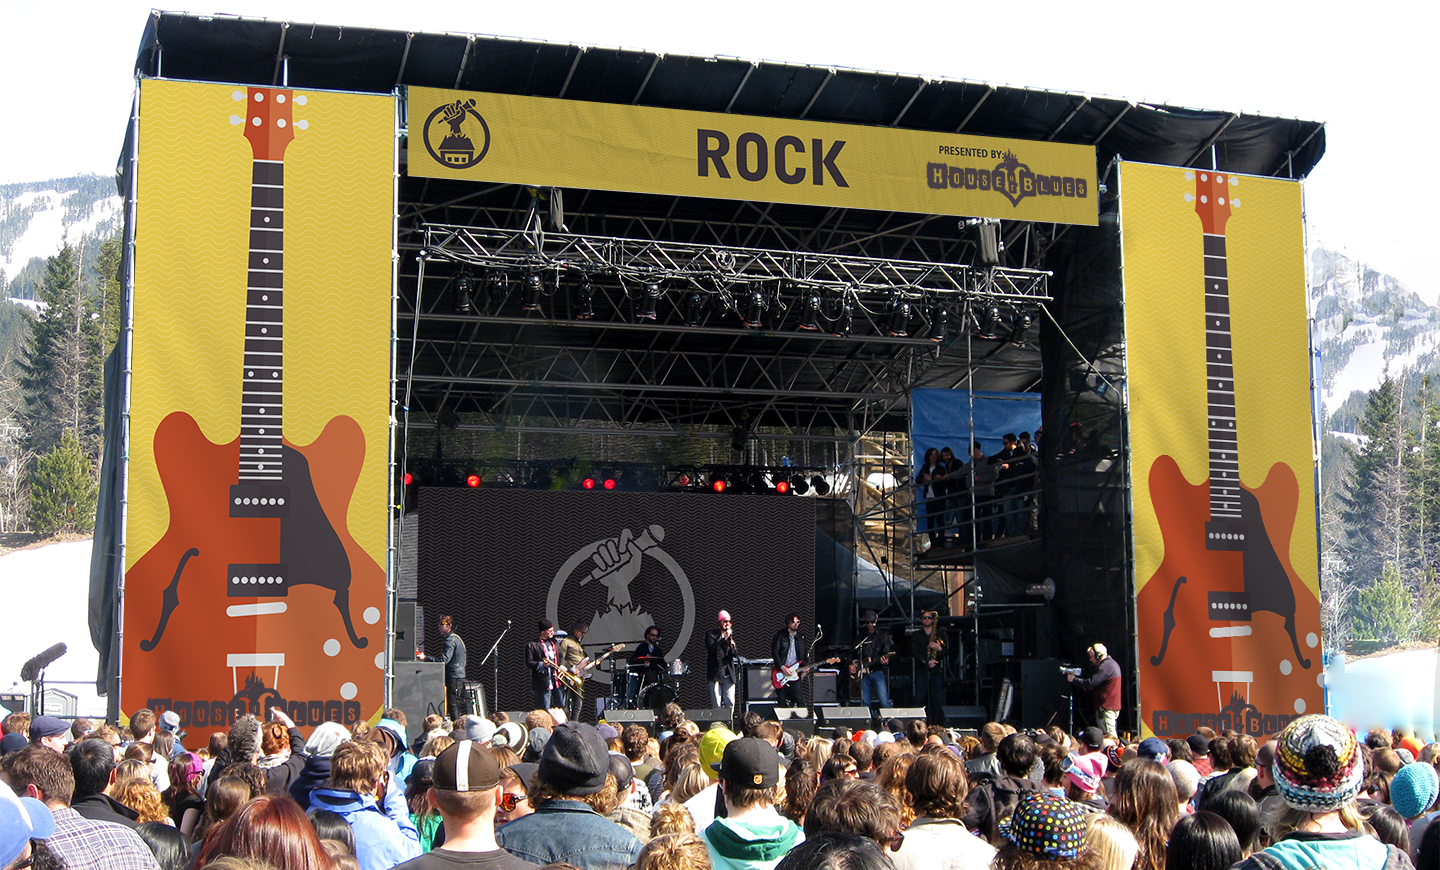 Rock competition stage